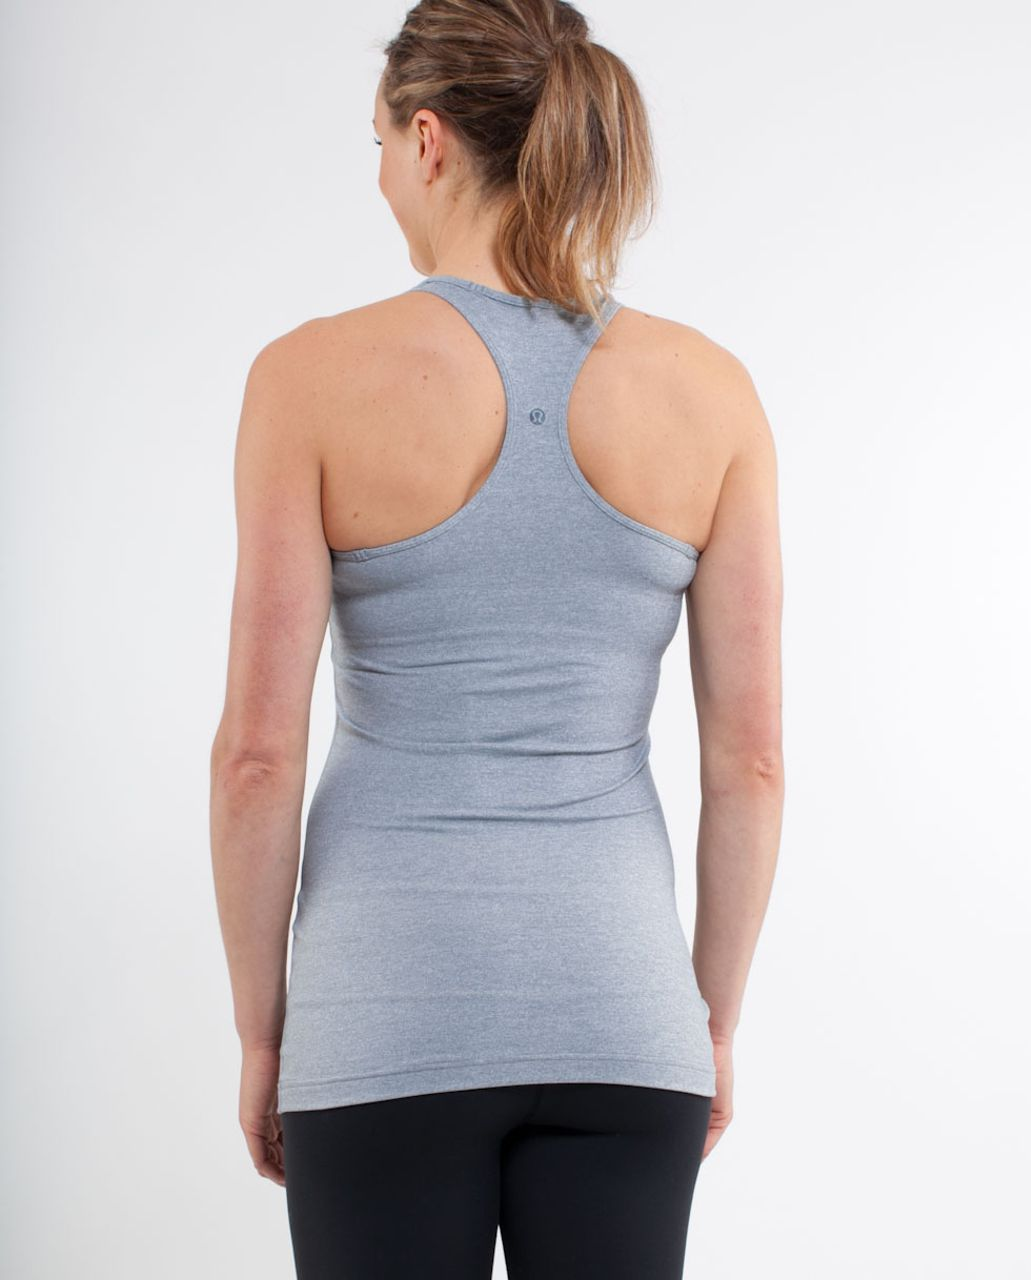 Lululemon Cool Racerback - Heathered Blurred Grey